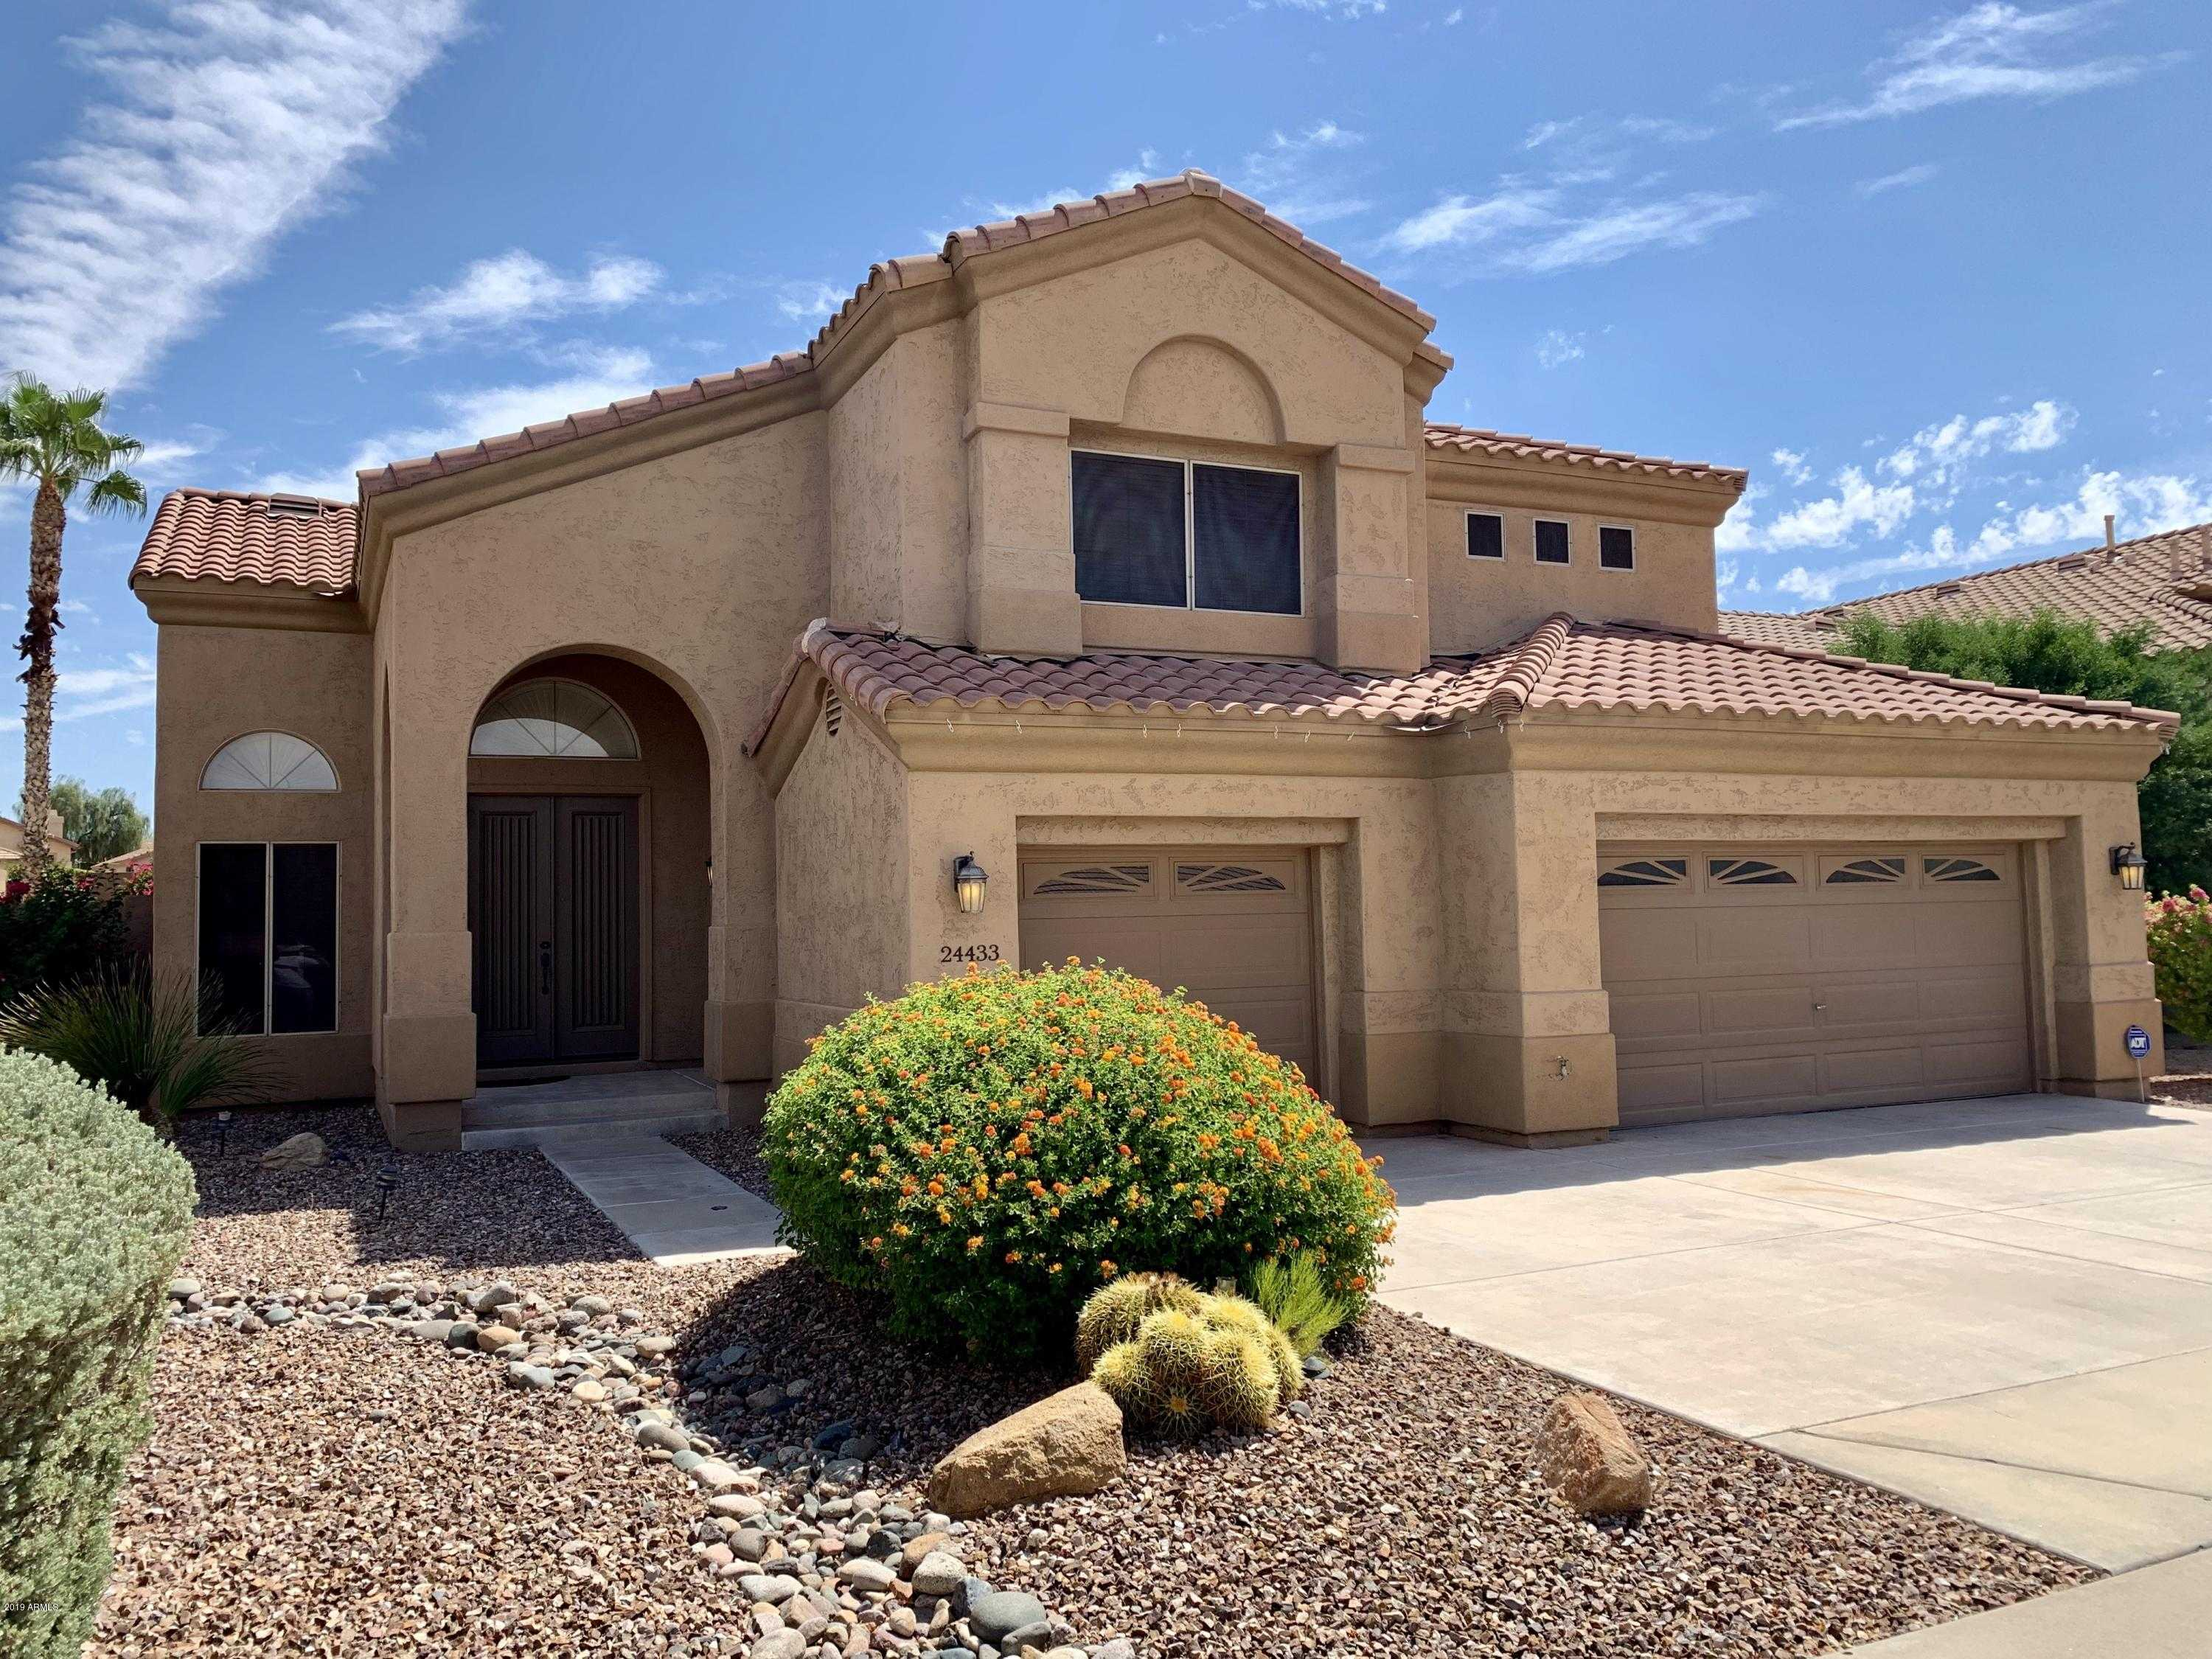 $500,000 - 4Br/3Ba - Home for Sale in Pinnacle Reserve 2, Scottsdale